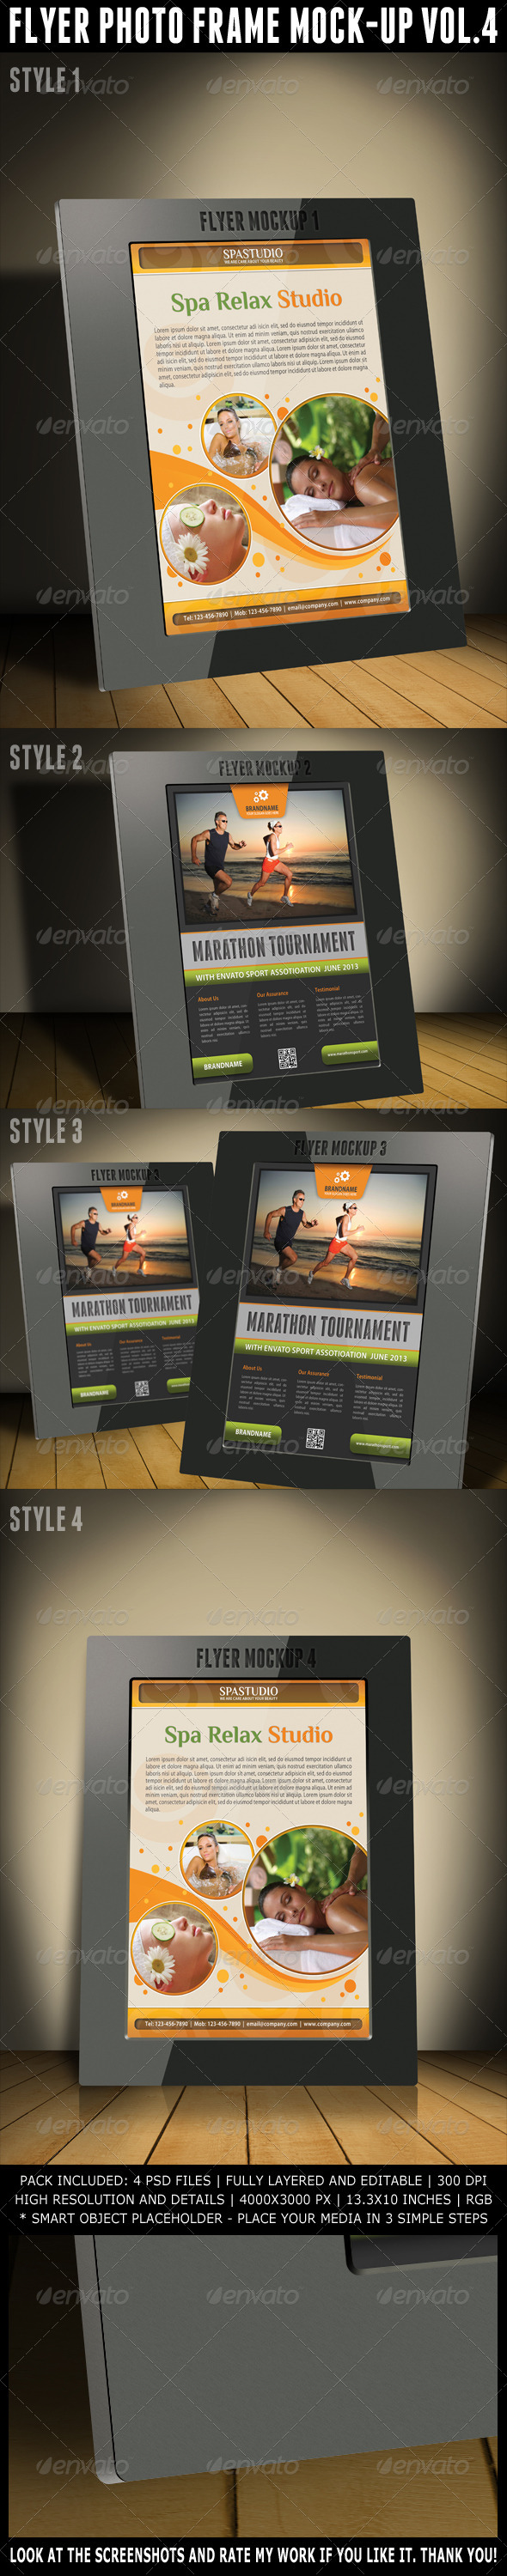 Flyer Photo Frame Mock-Up Vol.4